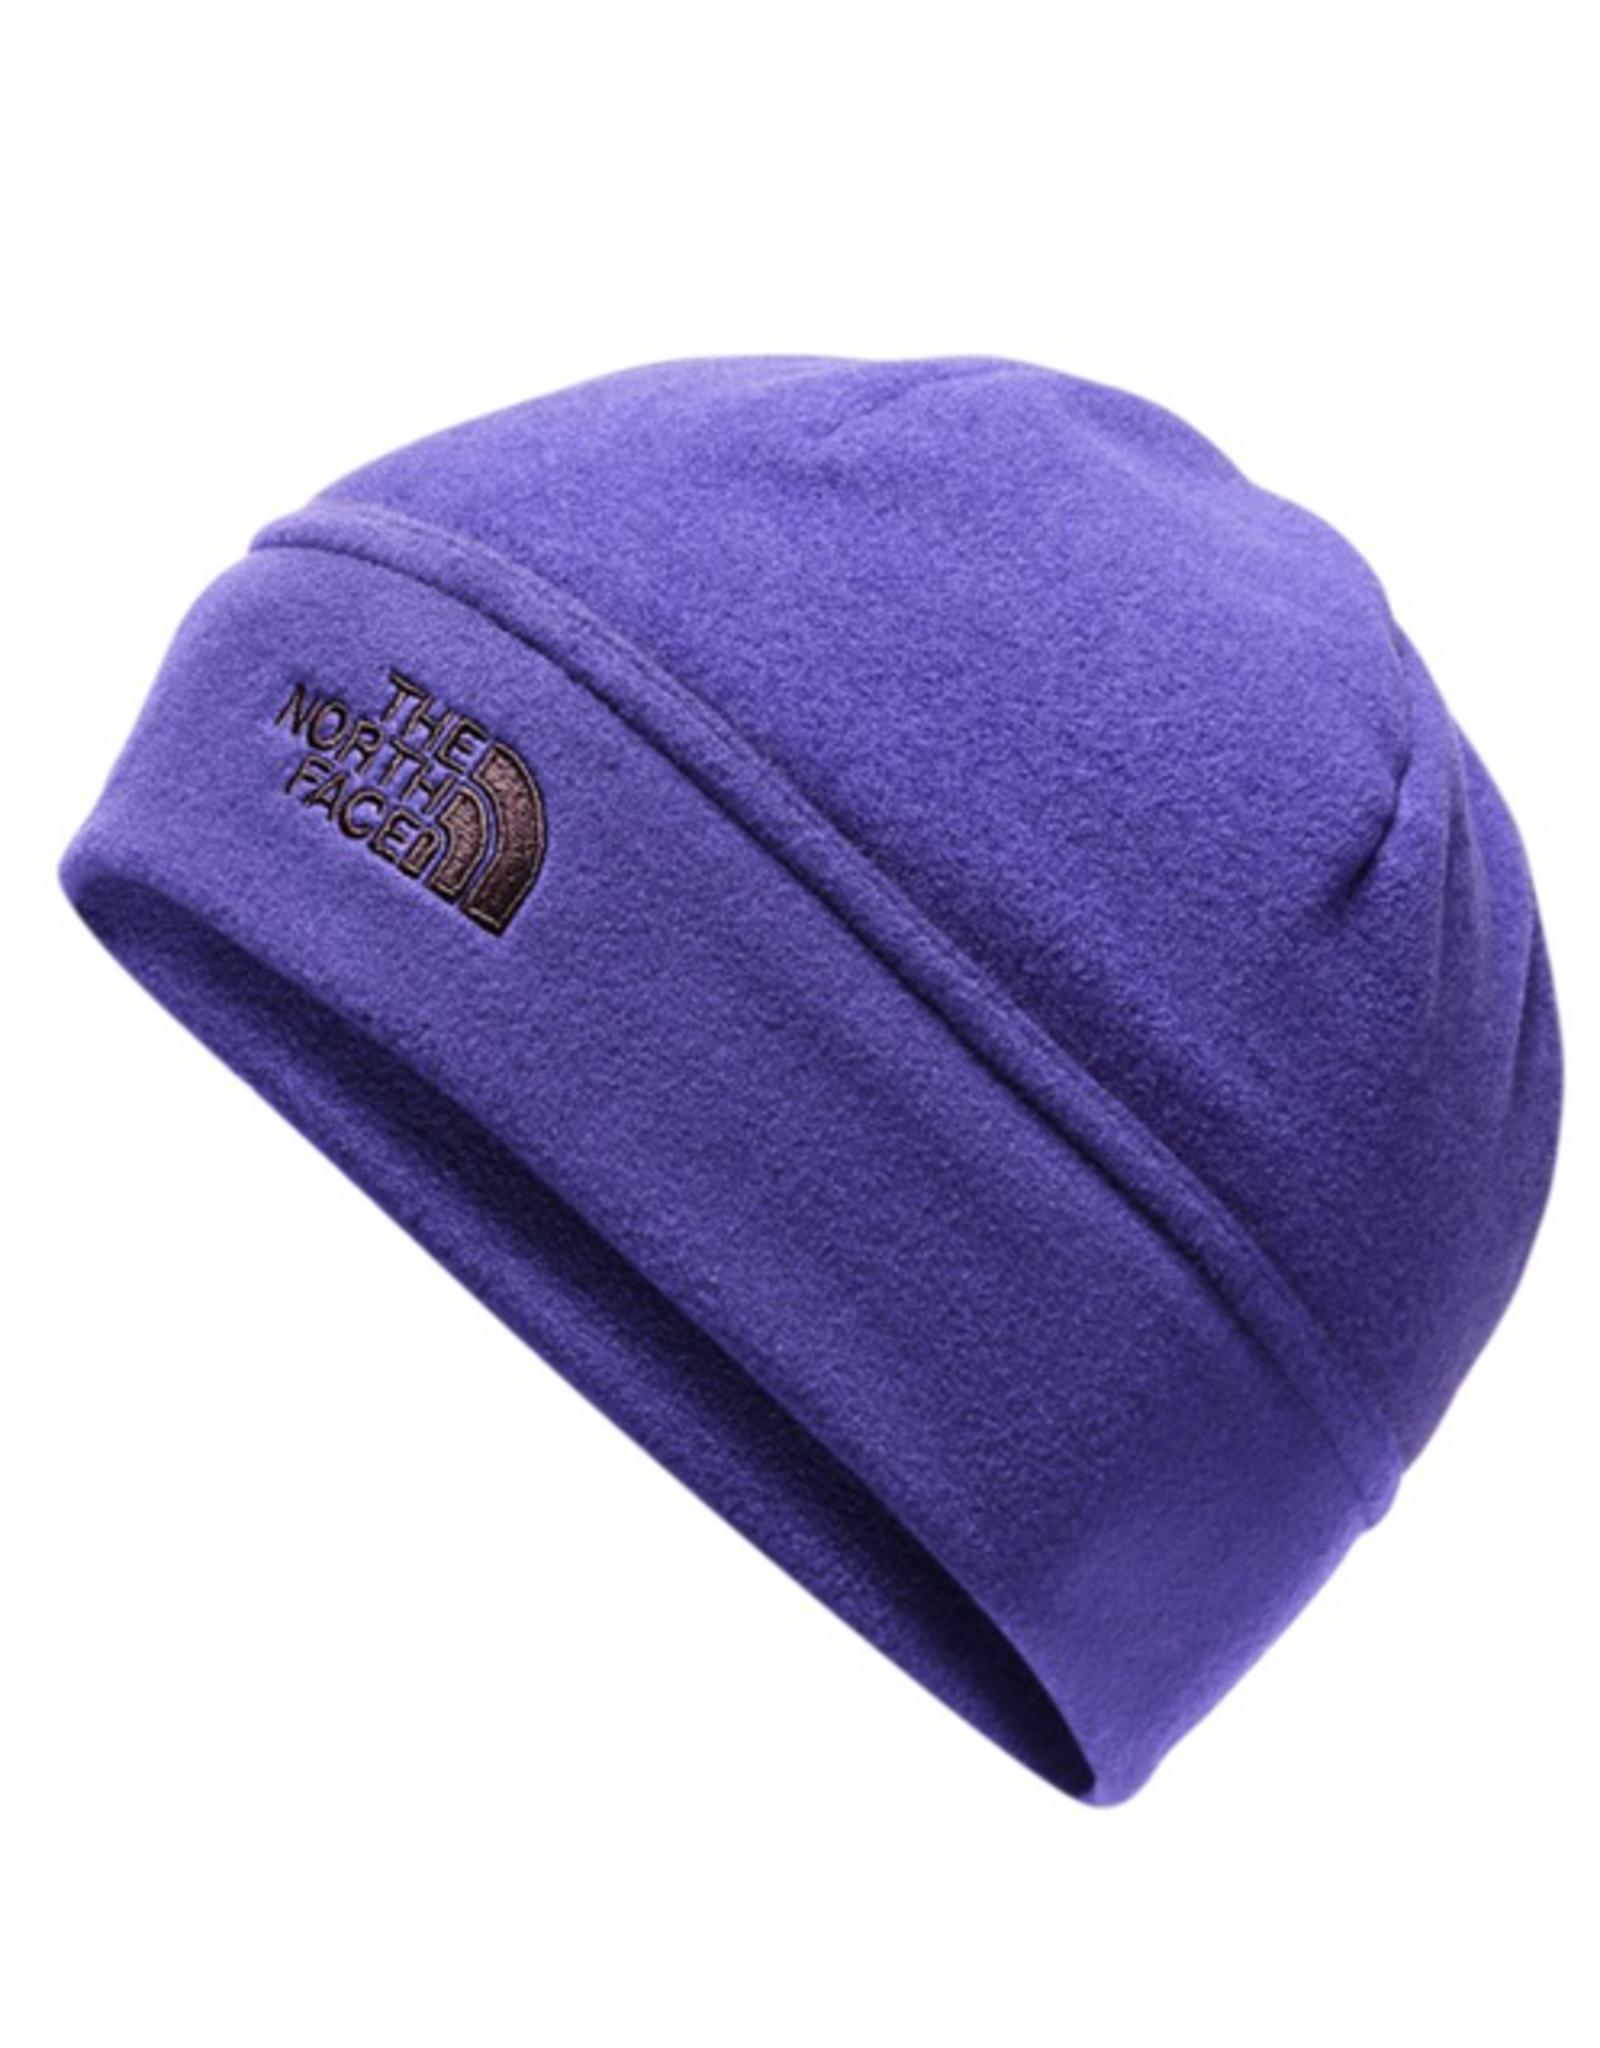 North Face North Face Standard Issue Beanie